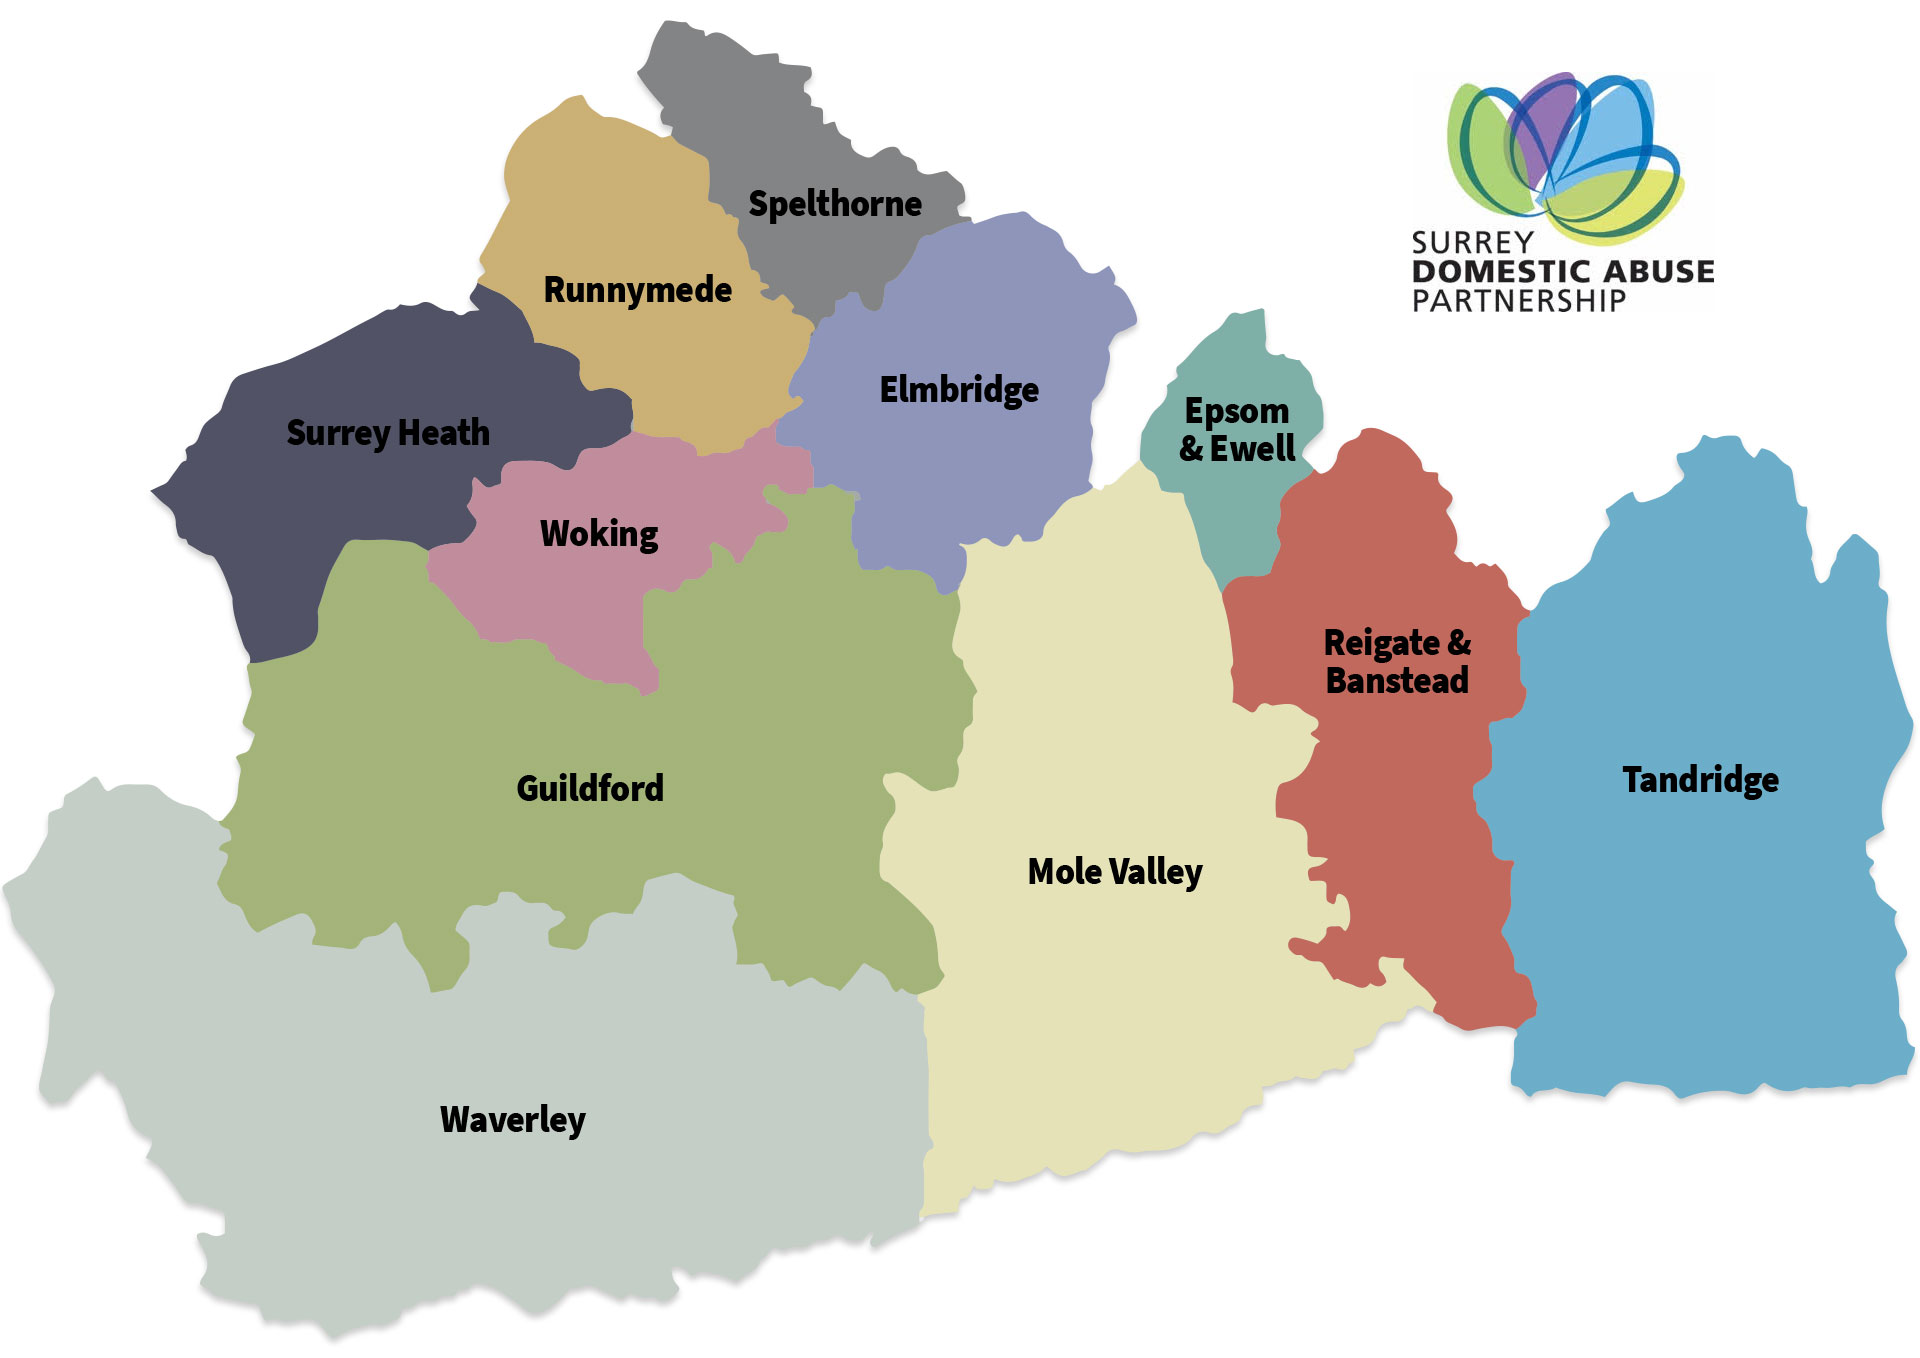 Surrey-Domestic-Abuse-Partnership-SDAP-Map